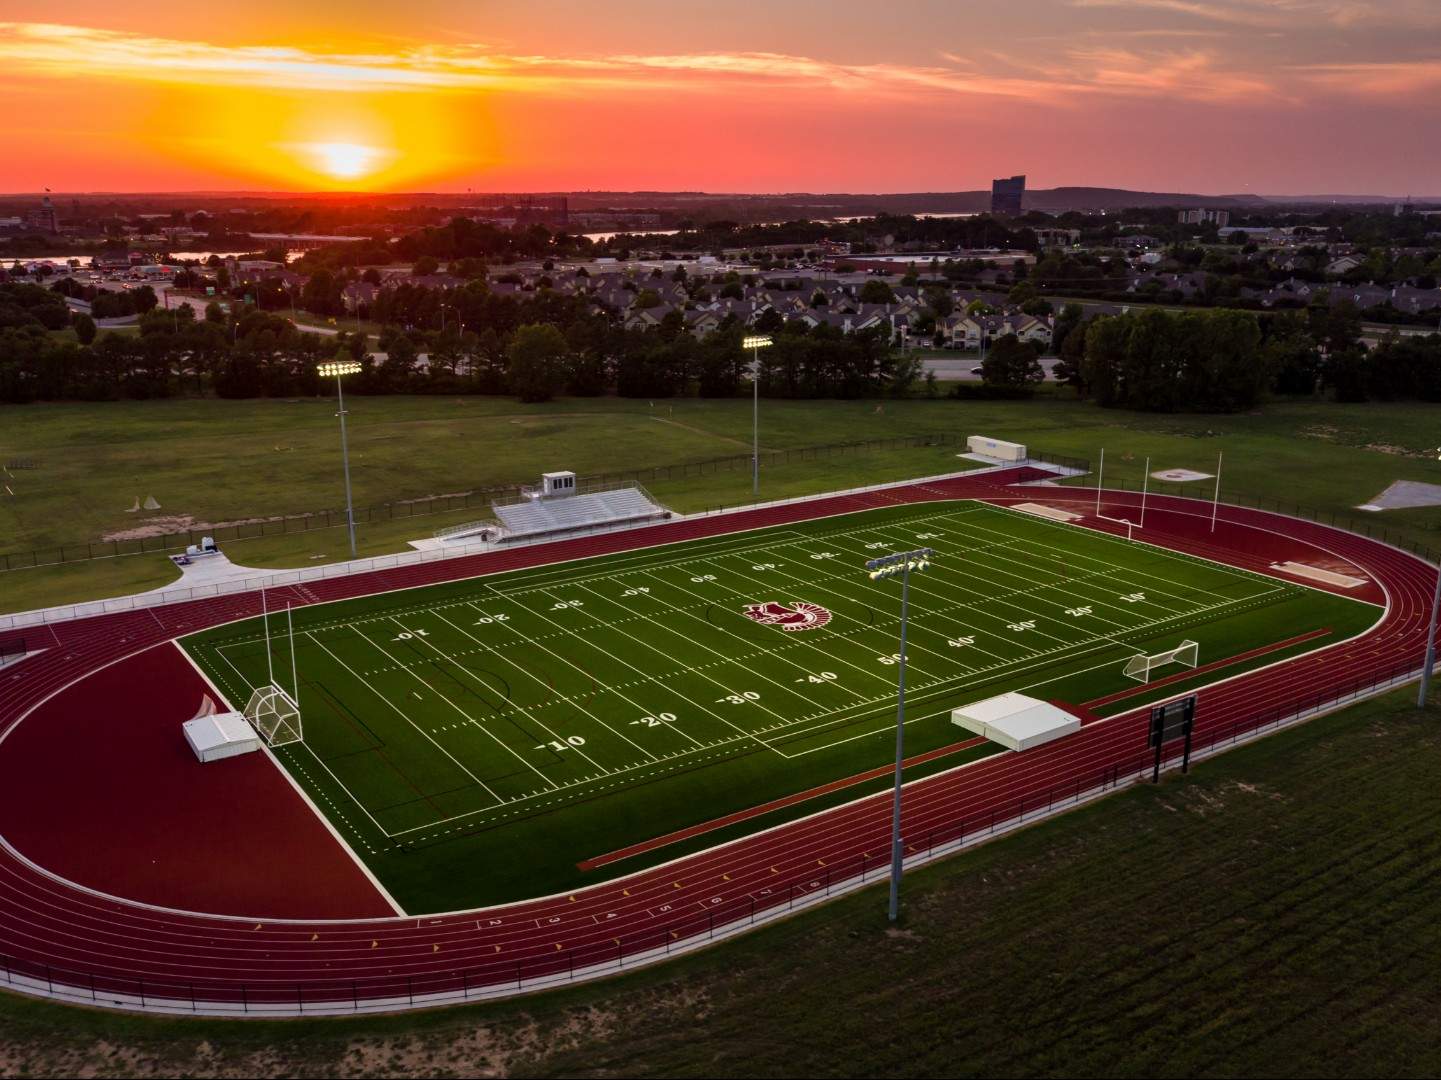 Bond dollars at work: A view of the new athletic field and track facility at Jenks Middle School which can be used for multiple sports - football, soccer, lacrosse - as well as band and many other community events. The facility was fully funded by bond funds approved in 2018.